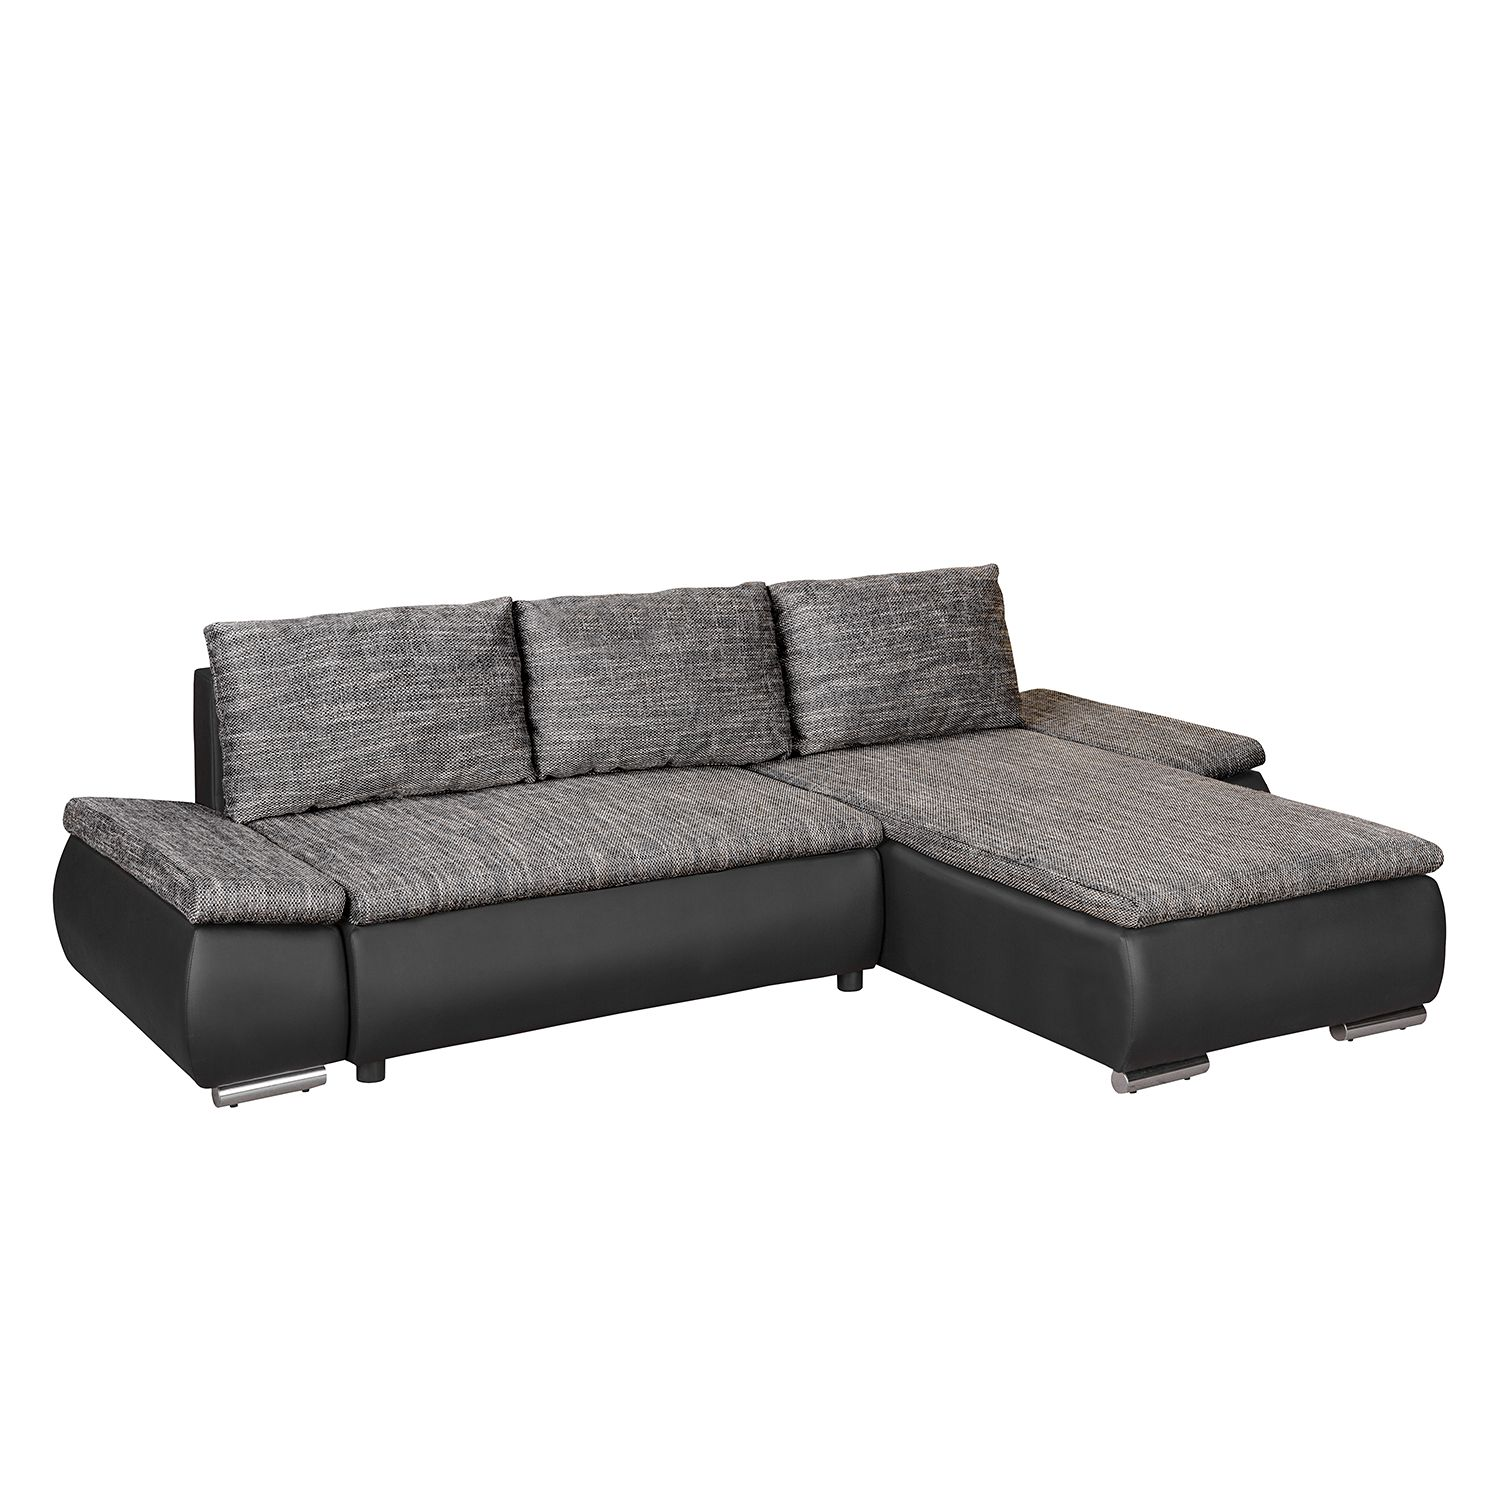 hussen f r sofa sofabezug spannbezug sofa husse sessel. Black Bedroom Furniture Sets. Home Design Ideas